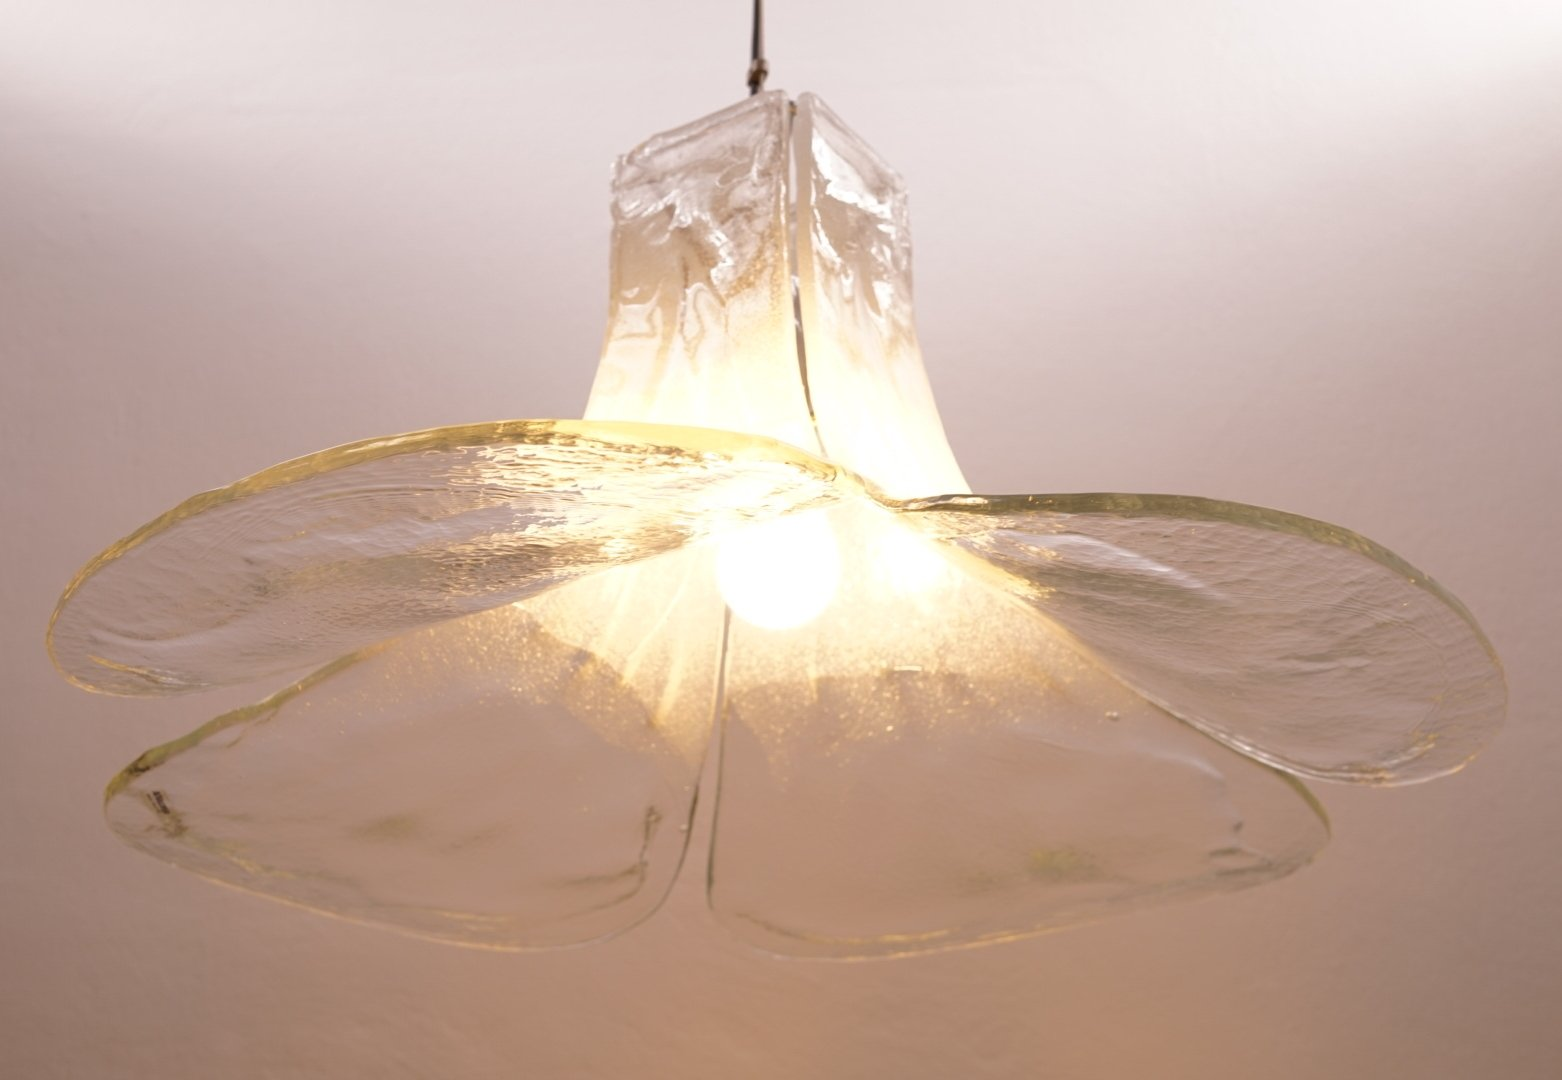 Large Murano glass chandelier designed by Carlo Nason for Mazzega